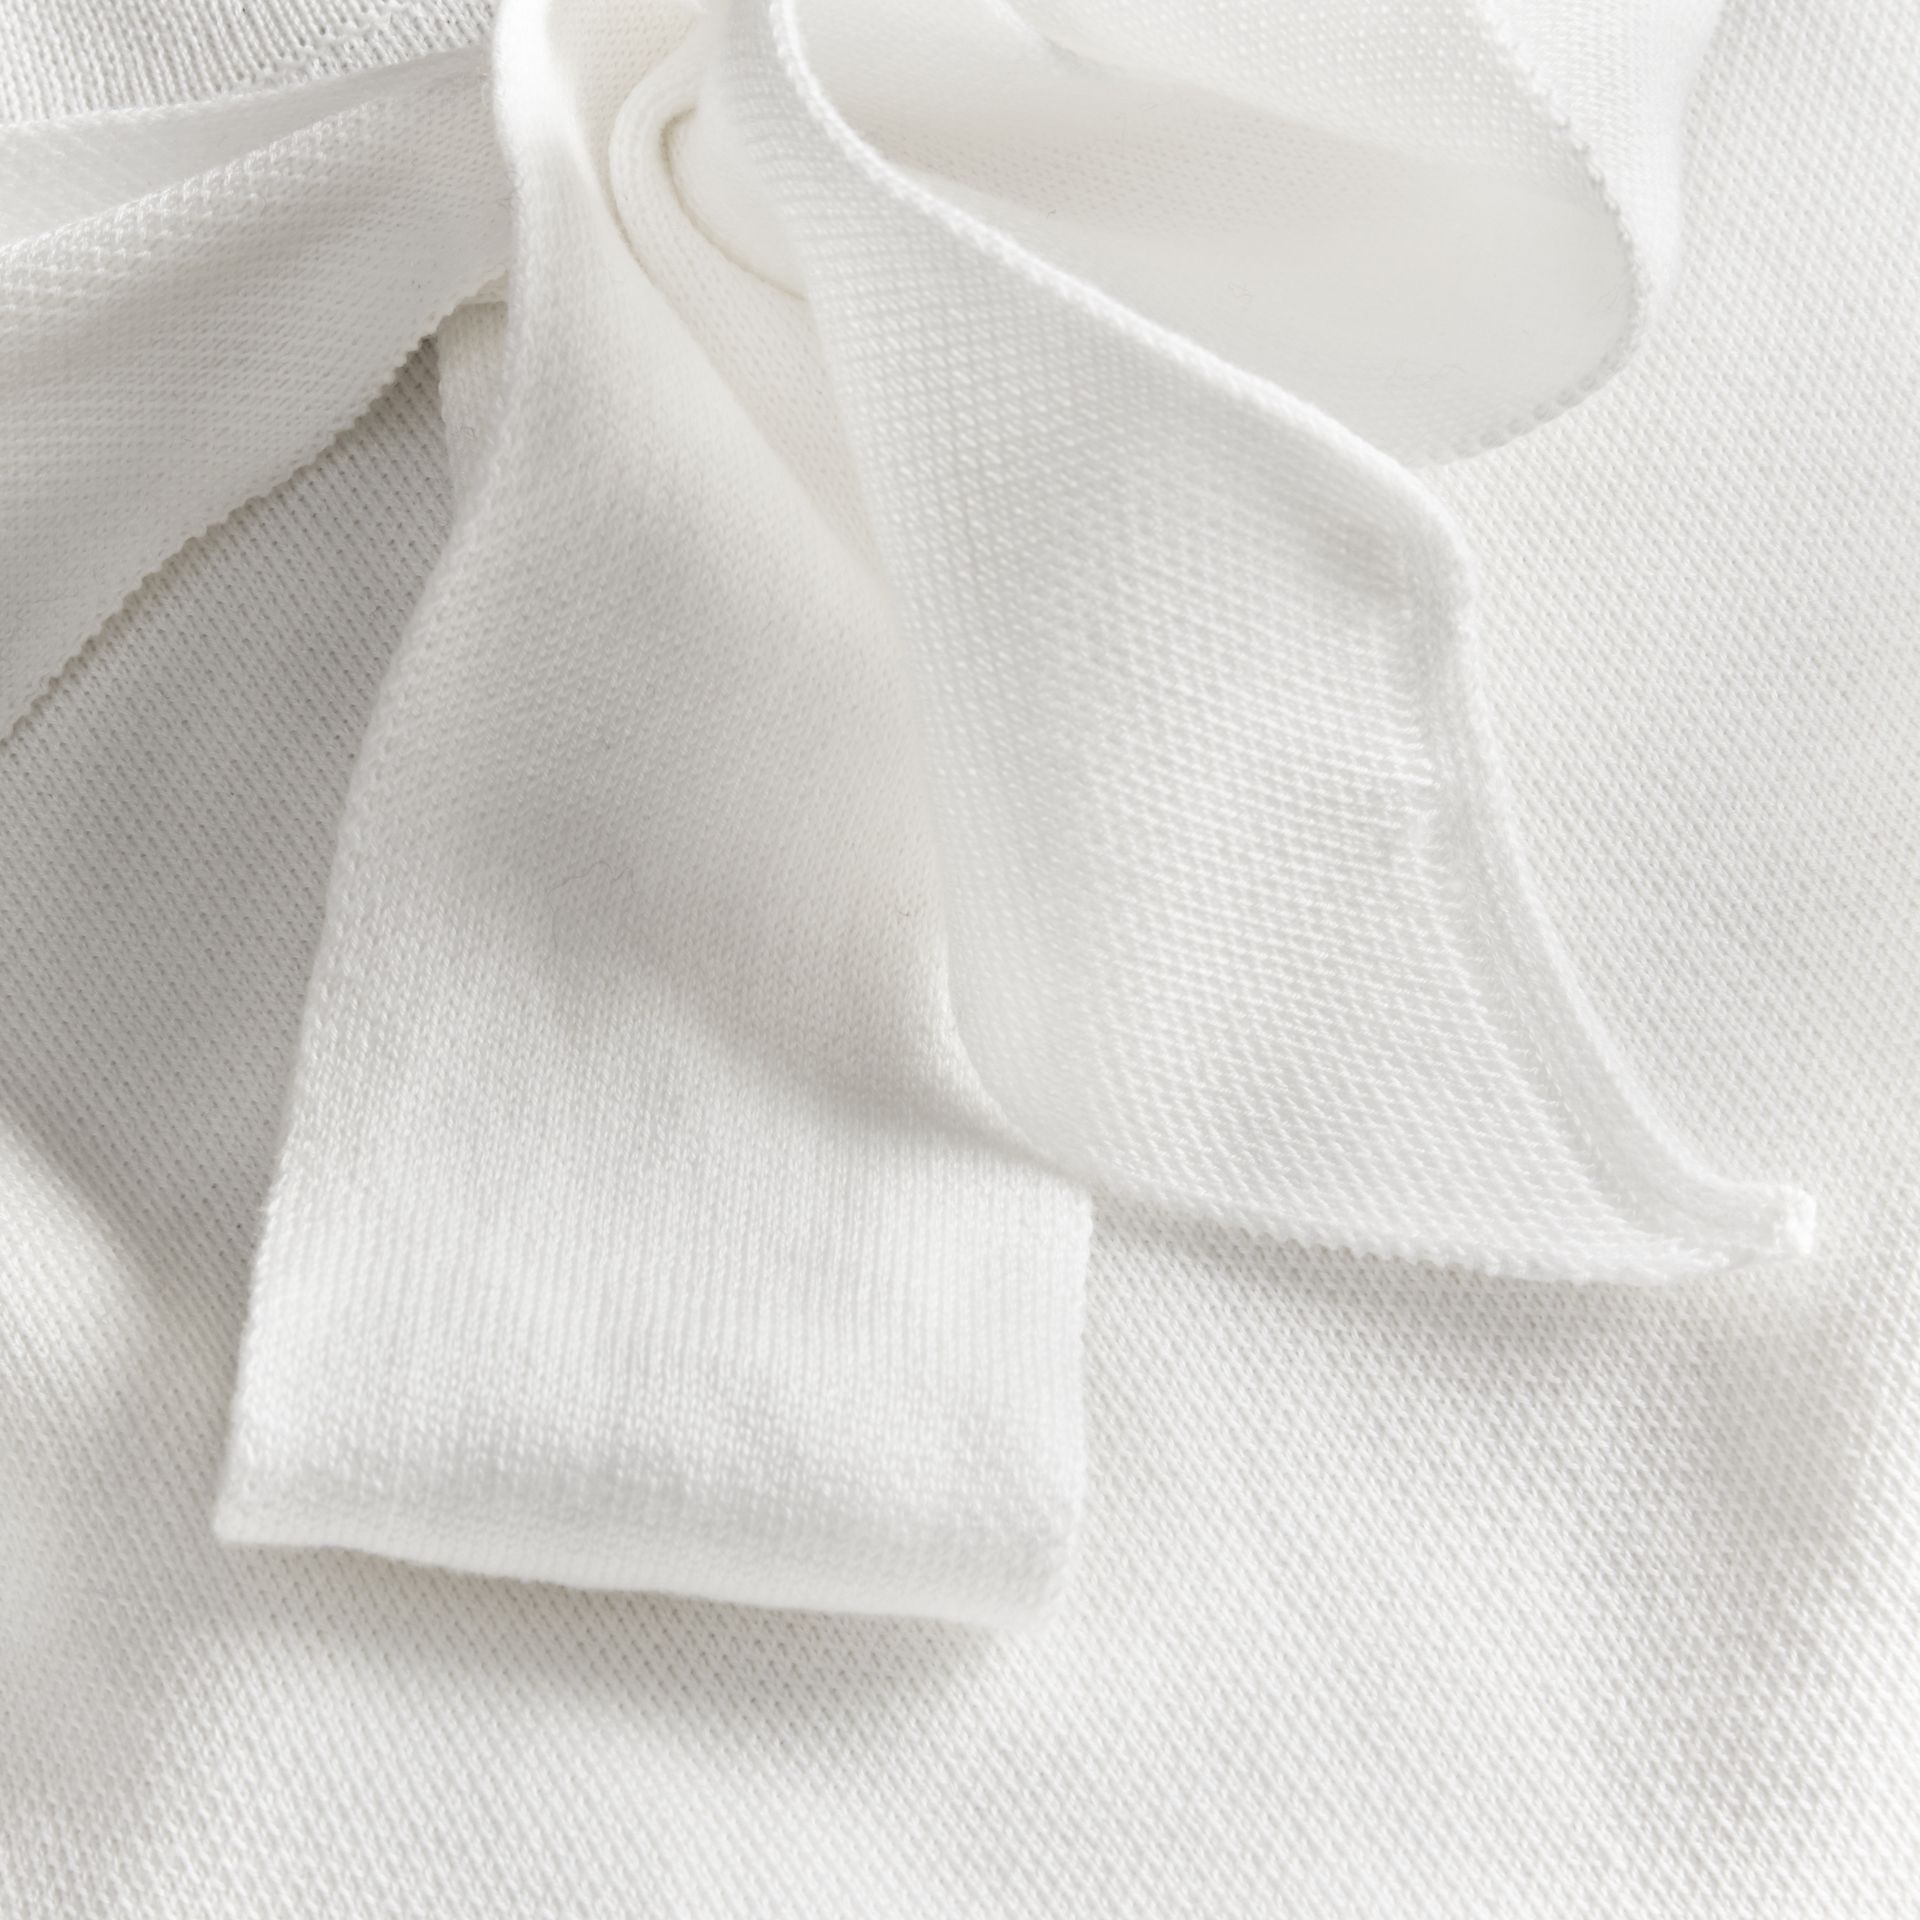 Natural white A-lIne Cotton Piqué Dress with Bow Detail - gallery image 2